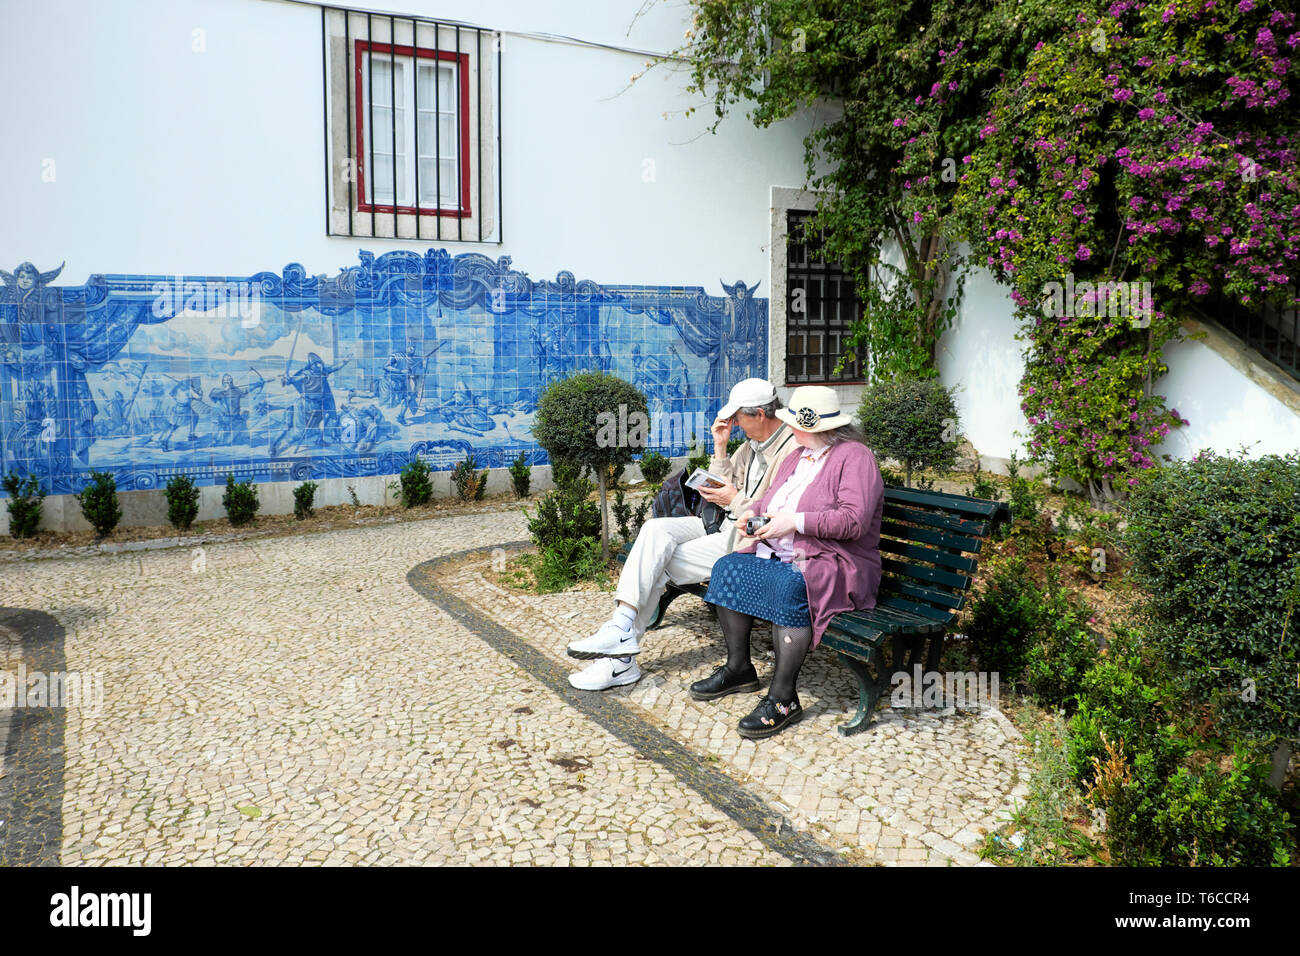 Tourists looking at a historical depiction of Seige of Lisbon 1147 commemorated in blue wall tiles azulejos in Alfama Lisboa Portugal  KATHY DEWITT Stock Photo